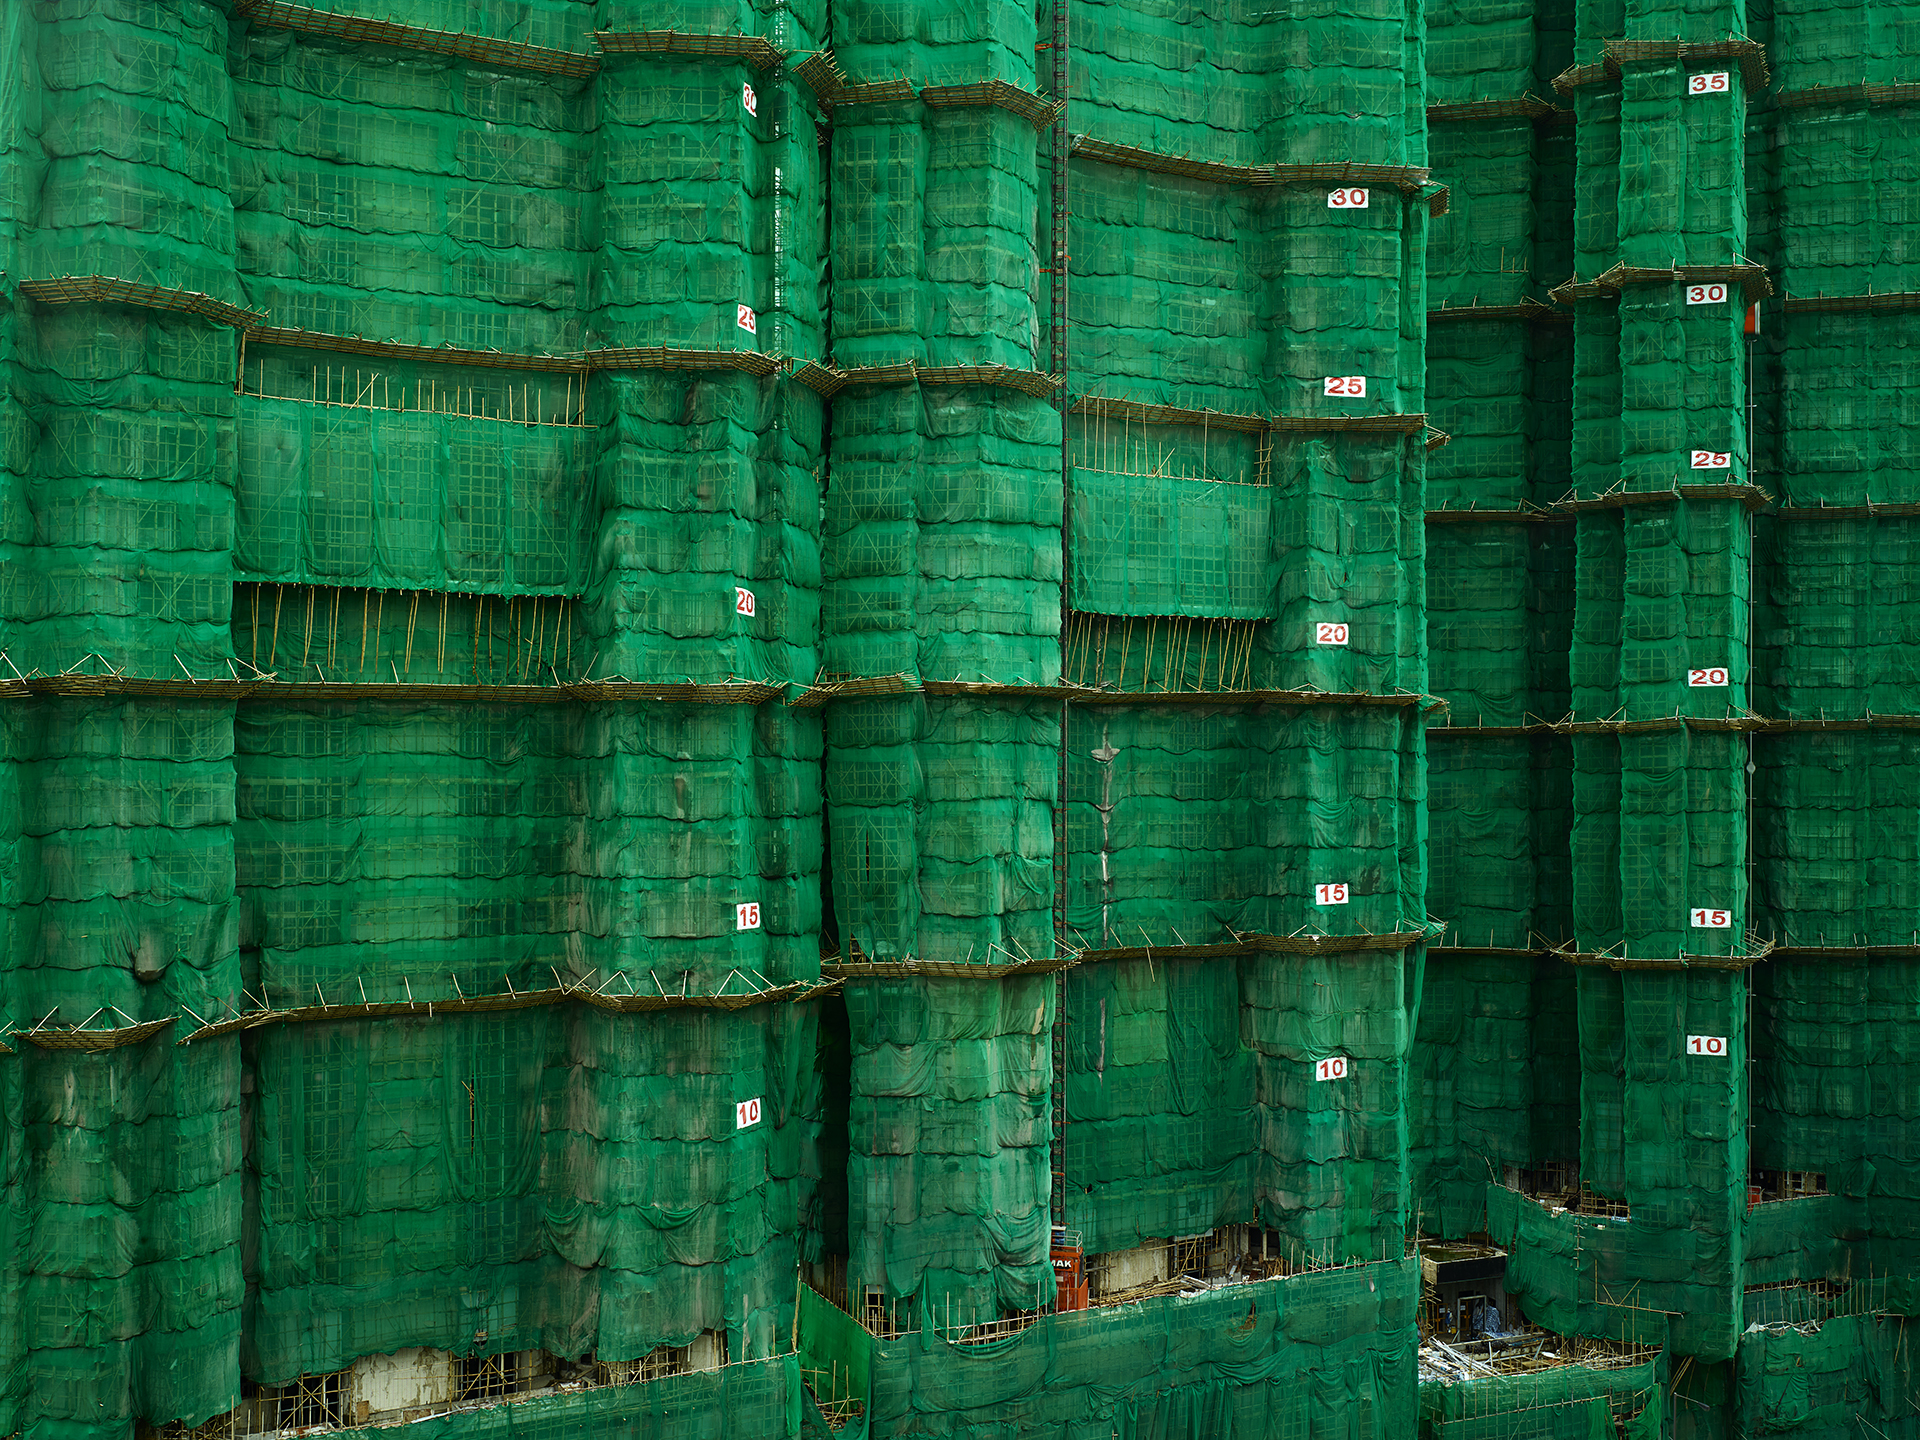 Green Cocoon #18, Hong Kong - 2013